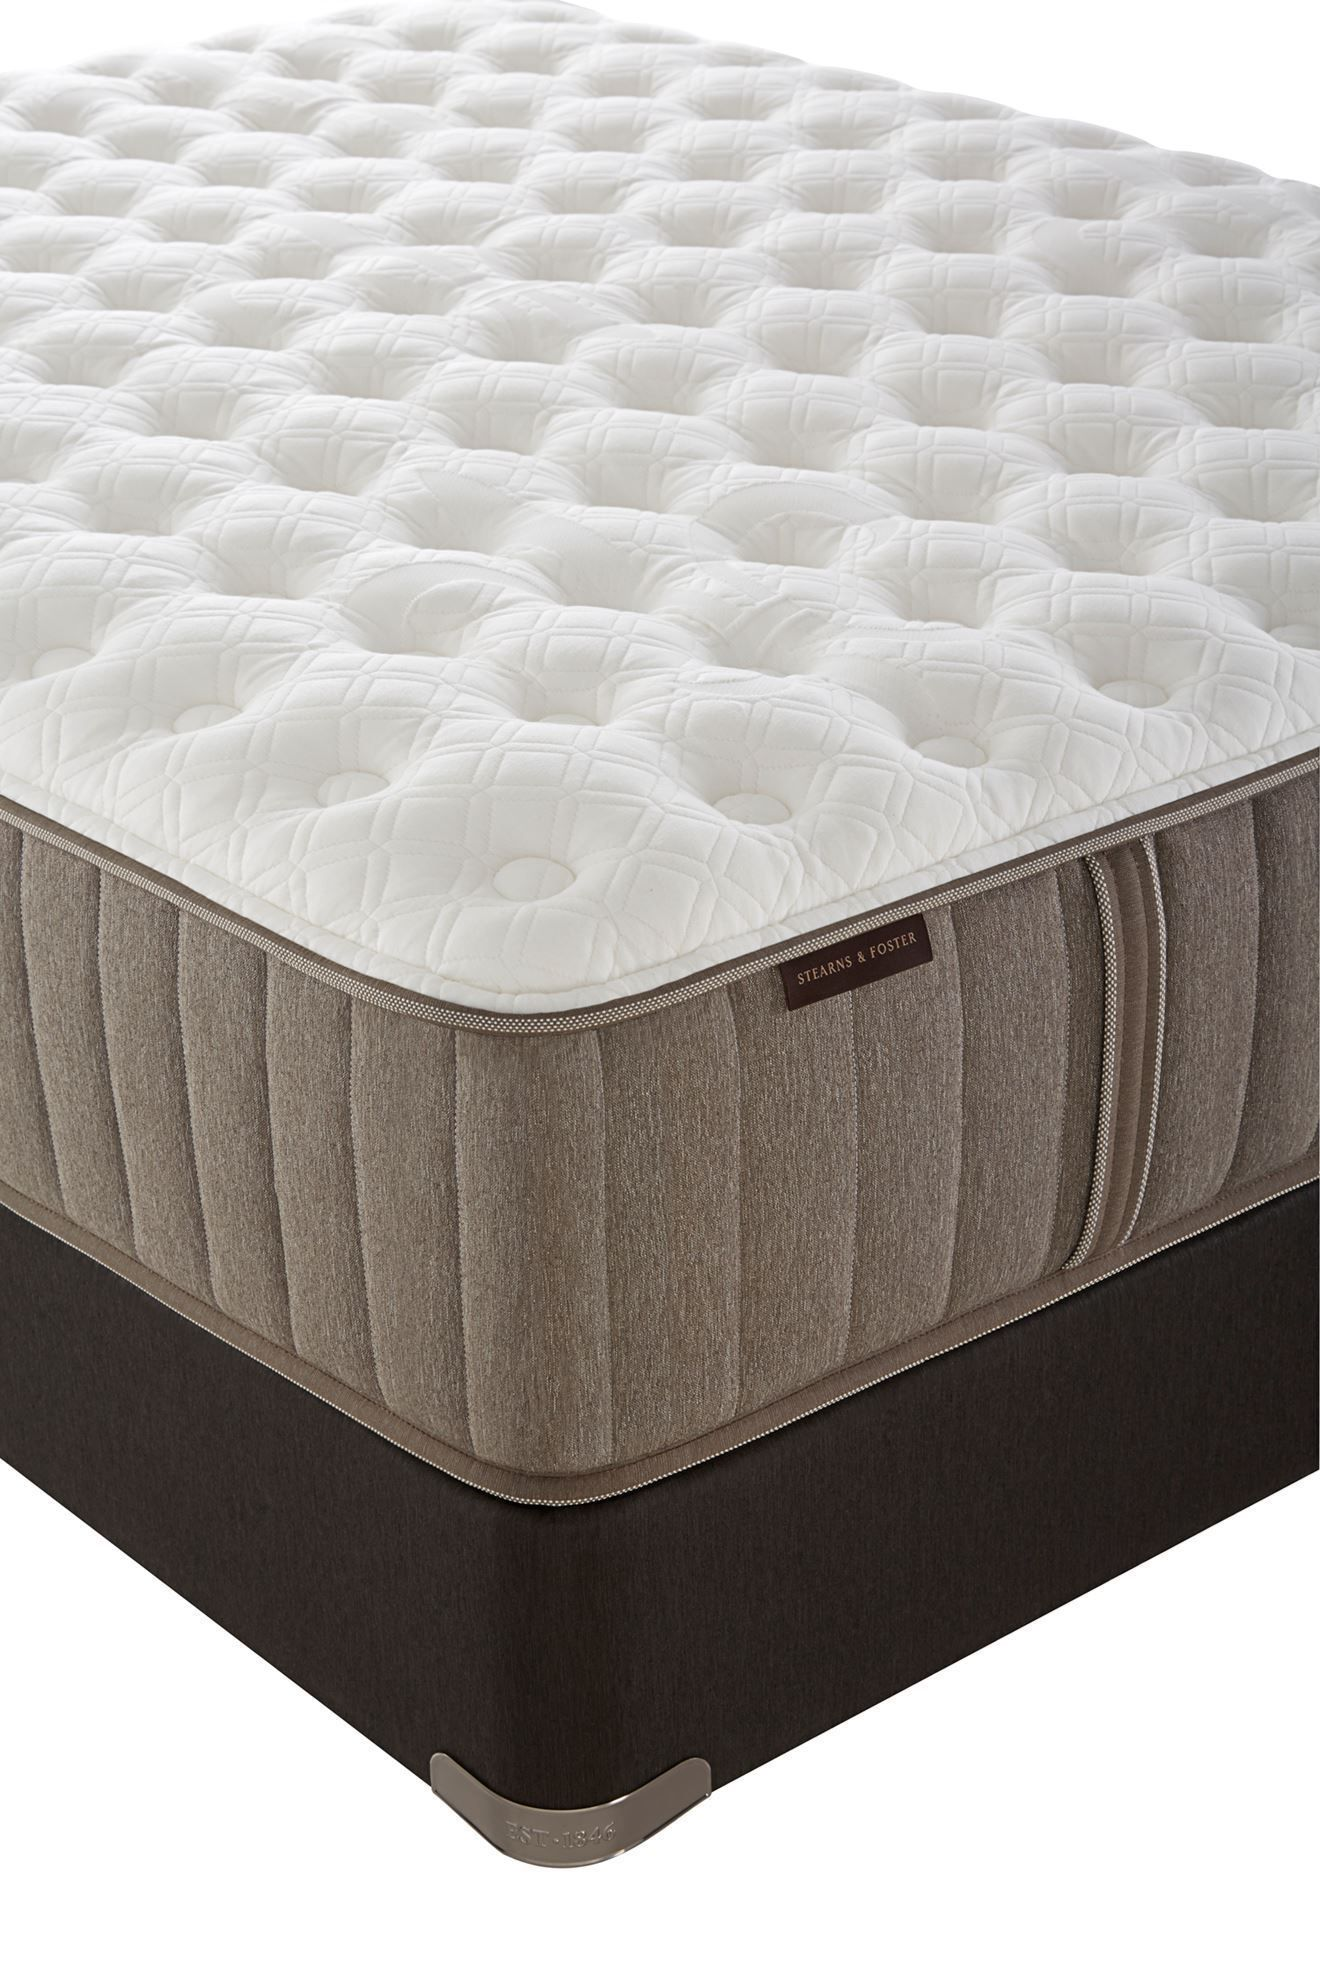 Picture of Stearns & Foster Scarborough Plush Pillowtop Twin XL Flat Foundation Set